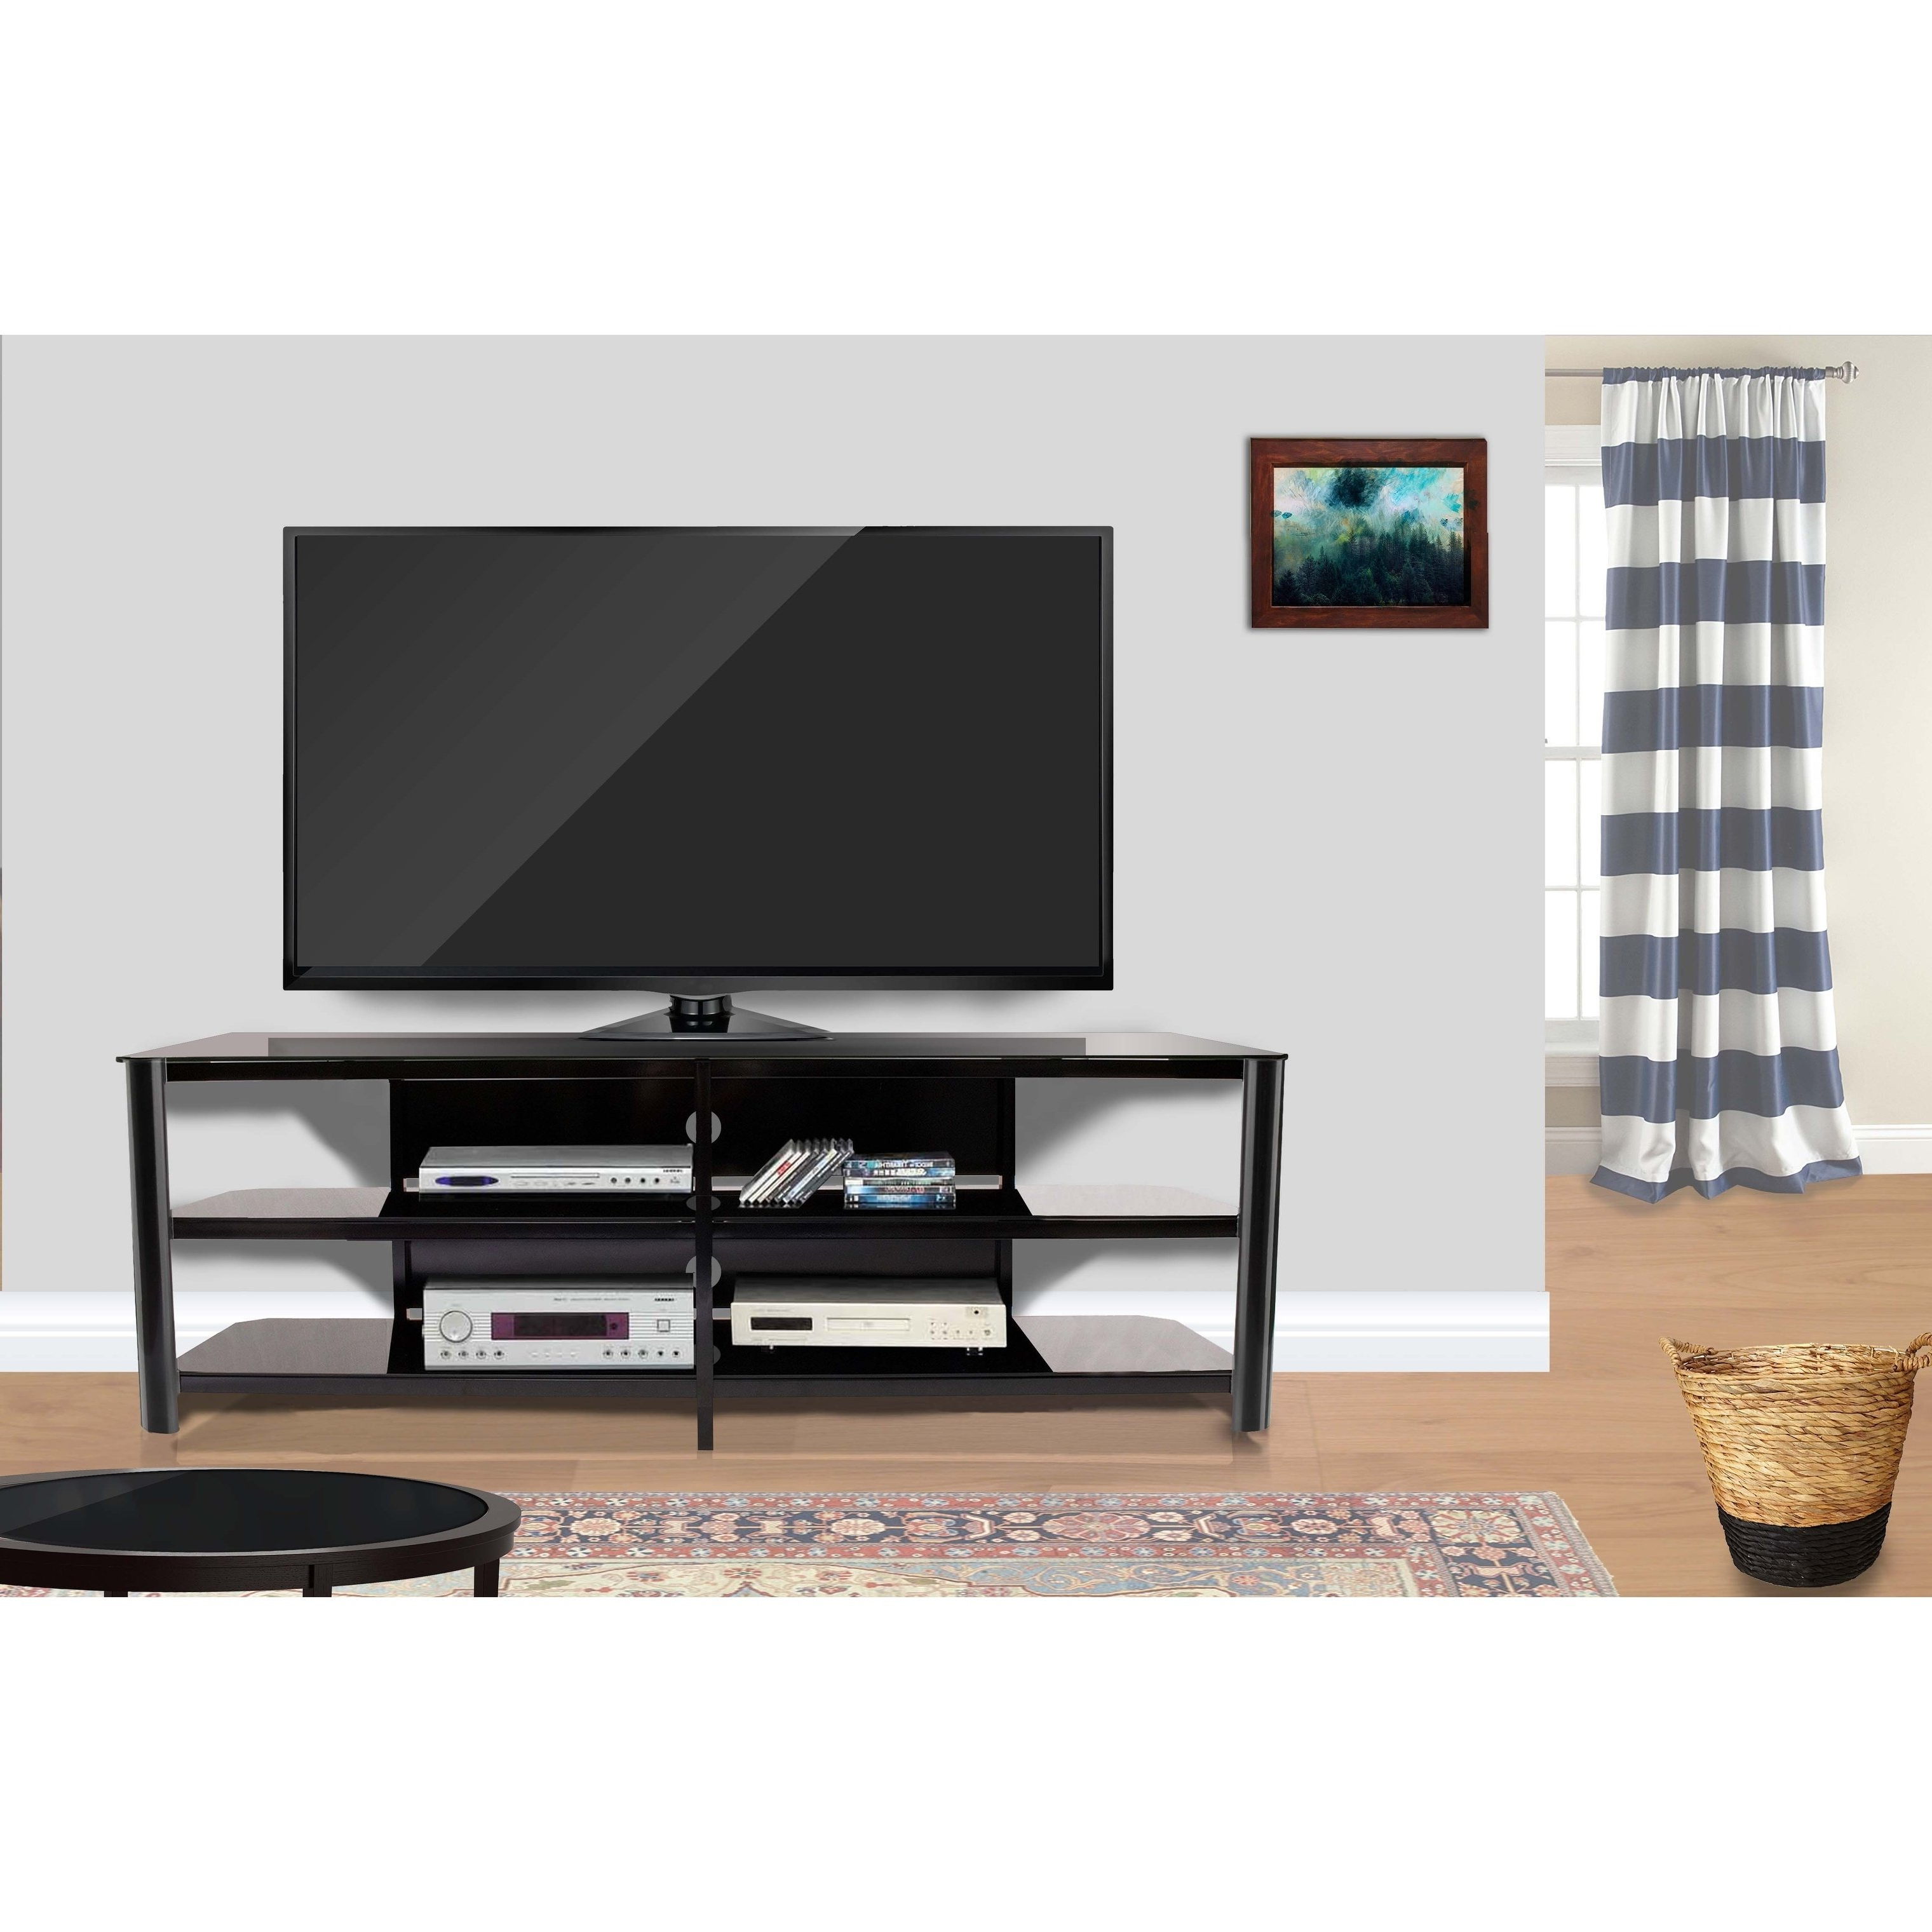 Current Shop Fold 'n' Snap Oxford Ez Black Innovex Tv Stand – Free Shipping Throughout Oxford 84 Inch Tv Stands (View 2 of 20)